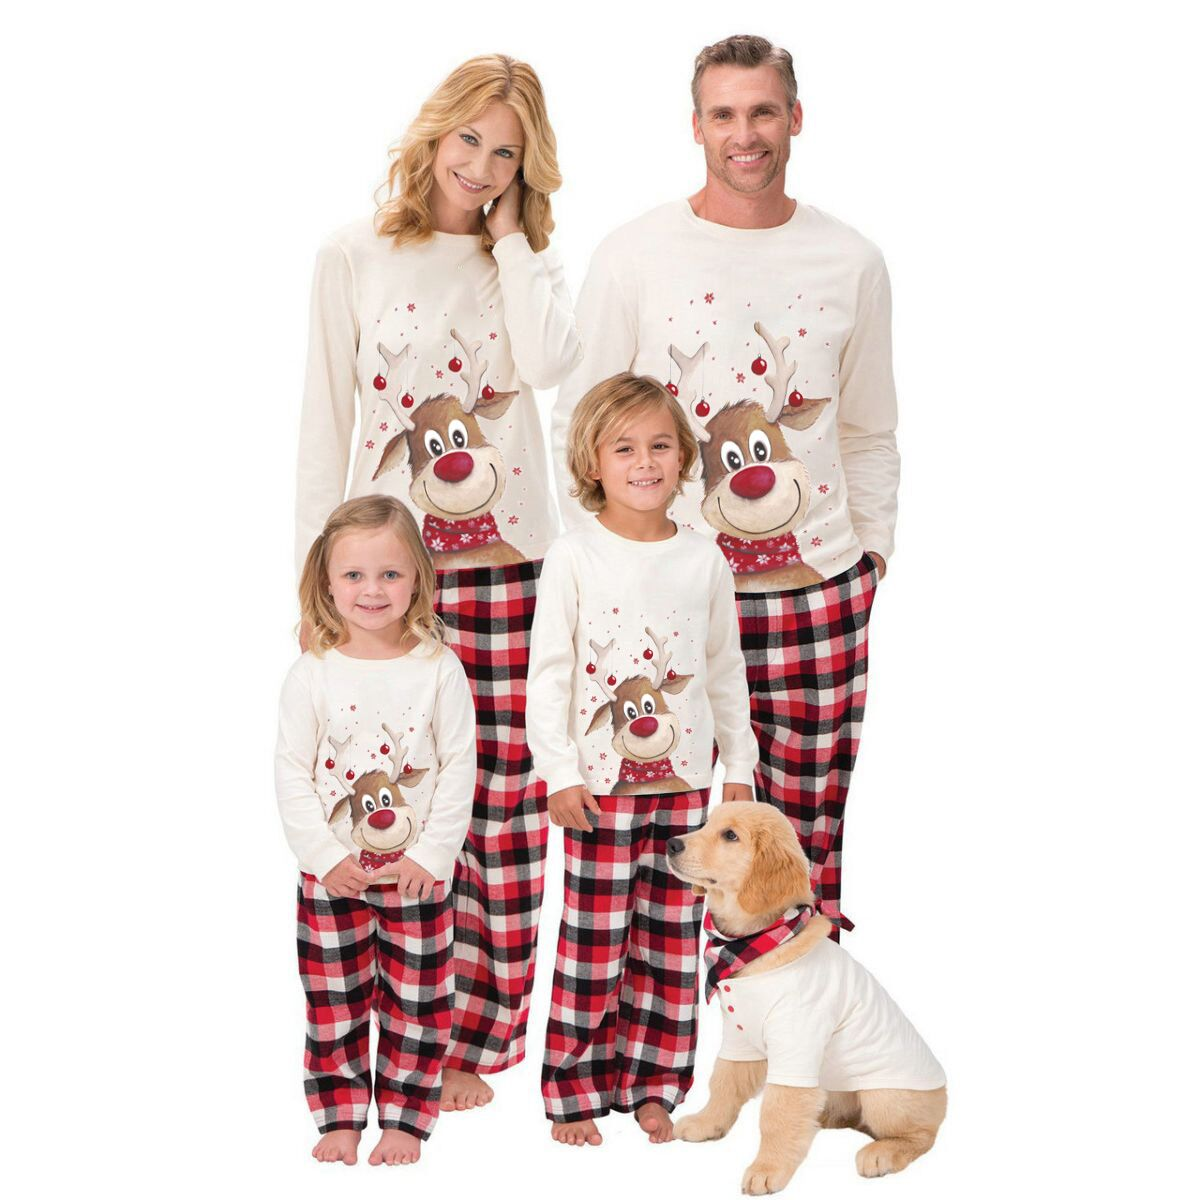 m-3xl-6m-9y-2018-family-christmas-pajamas-xmas-deer-print-adult-women-kids-family-matching-clothes-christmas-pajamas-family-set